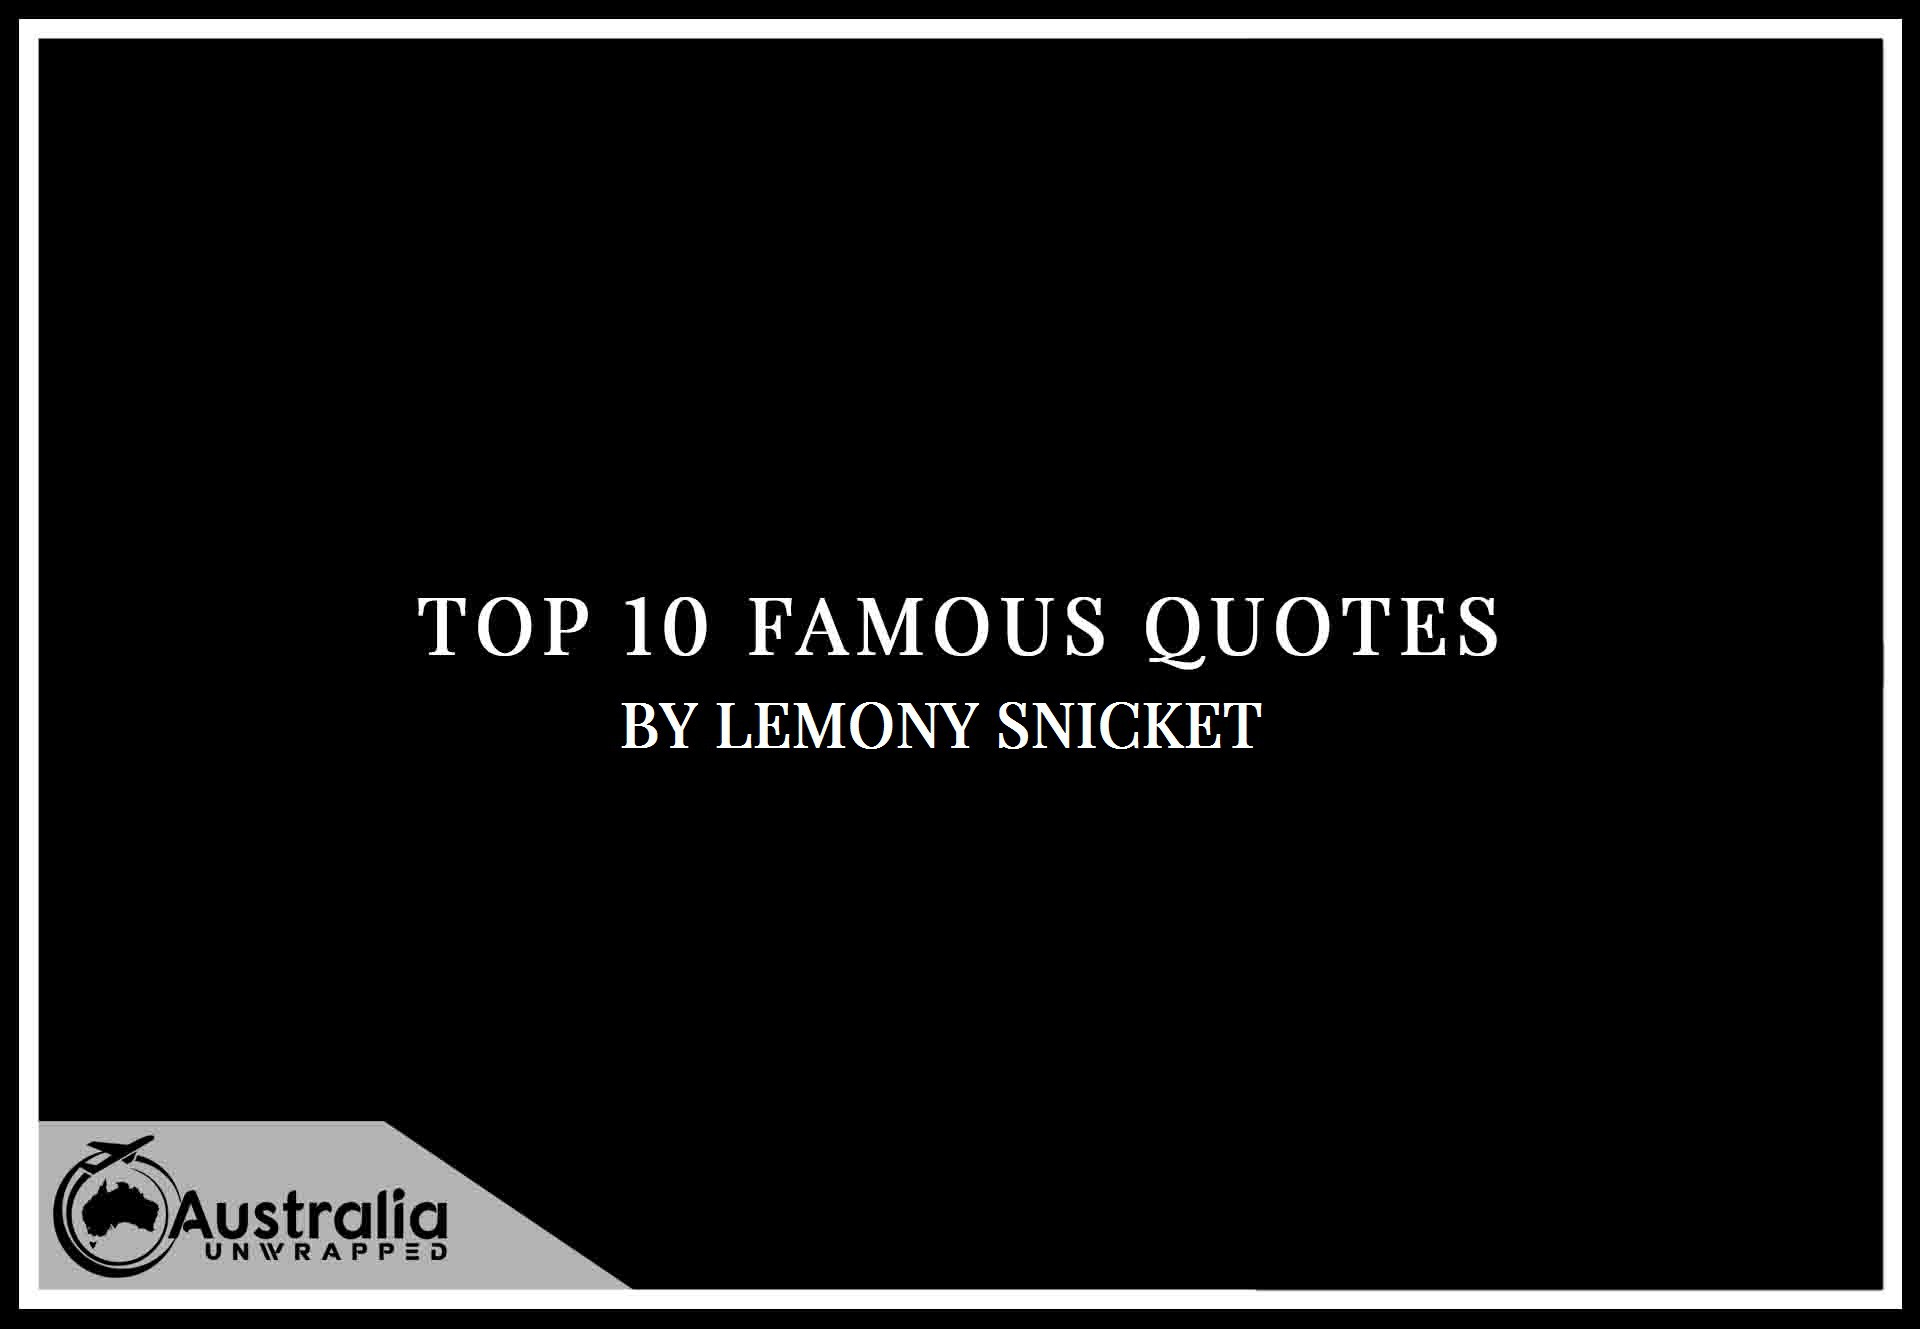 Lemony Snicket's Top 10 Popular and Famous Quotes